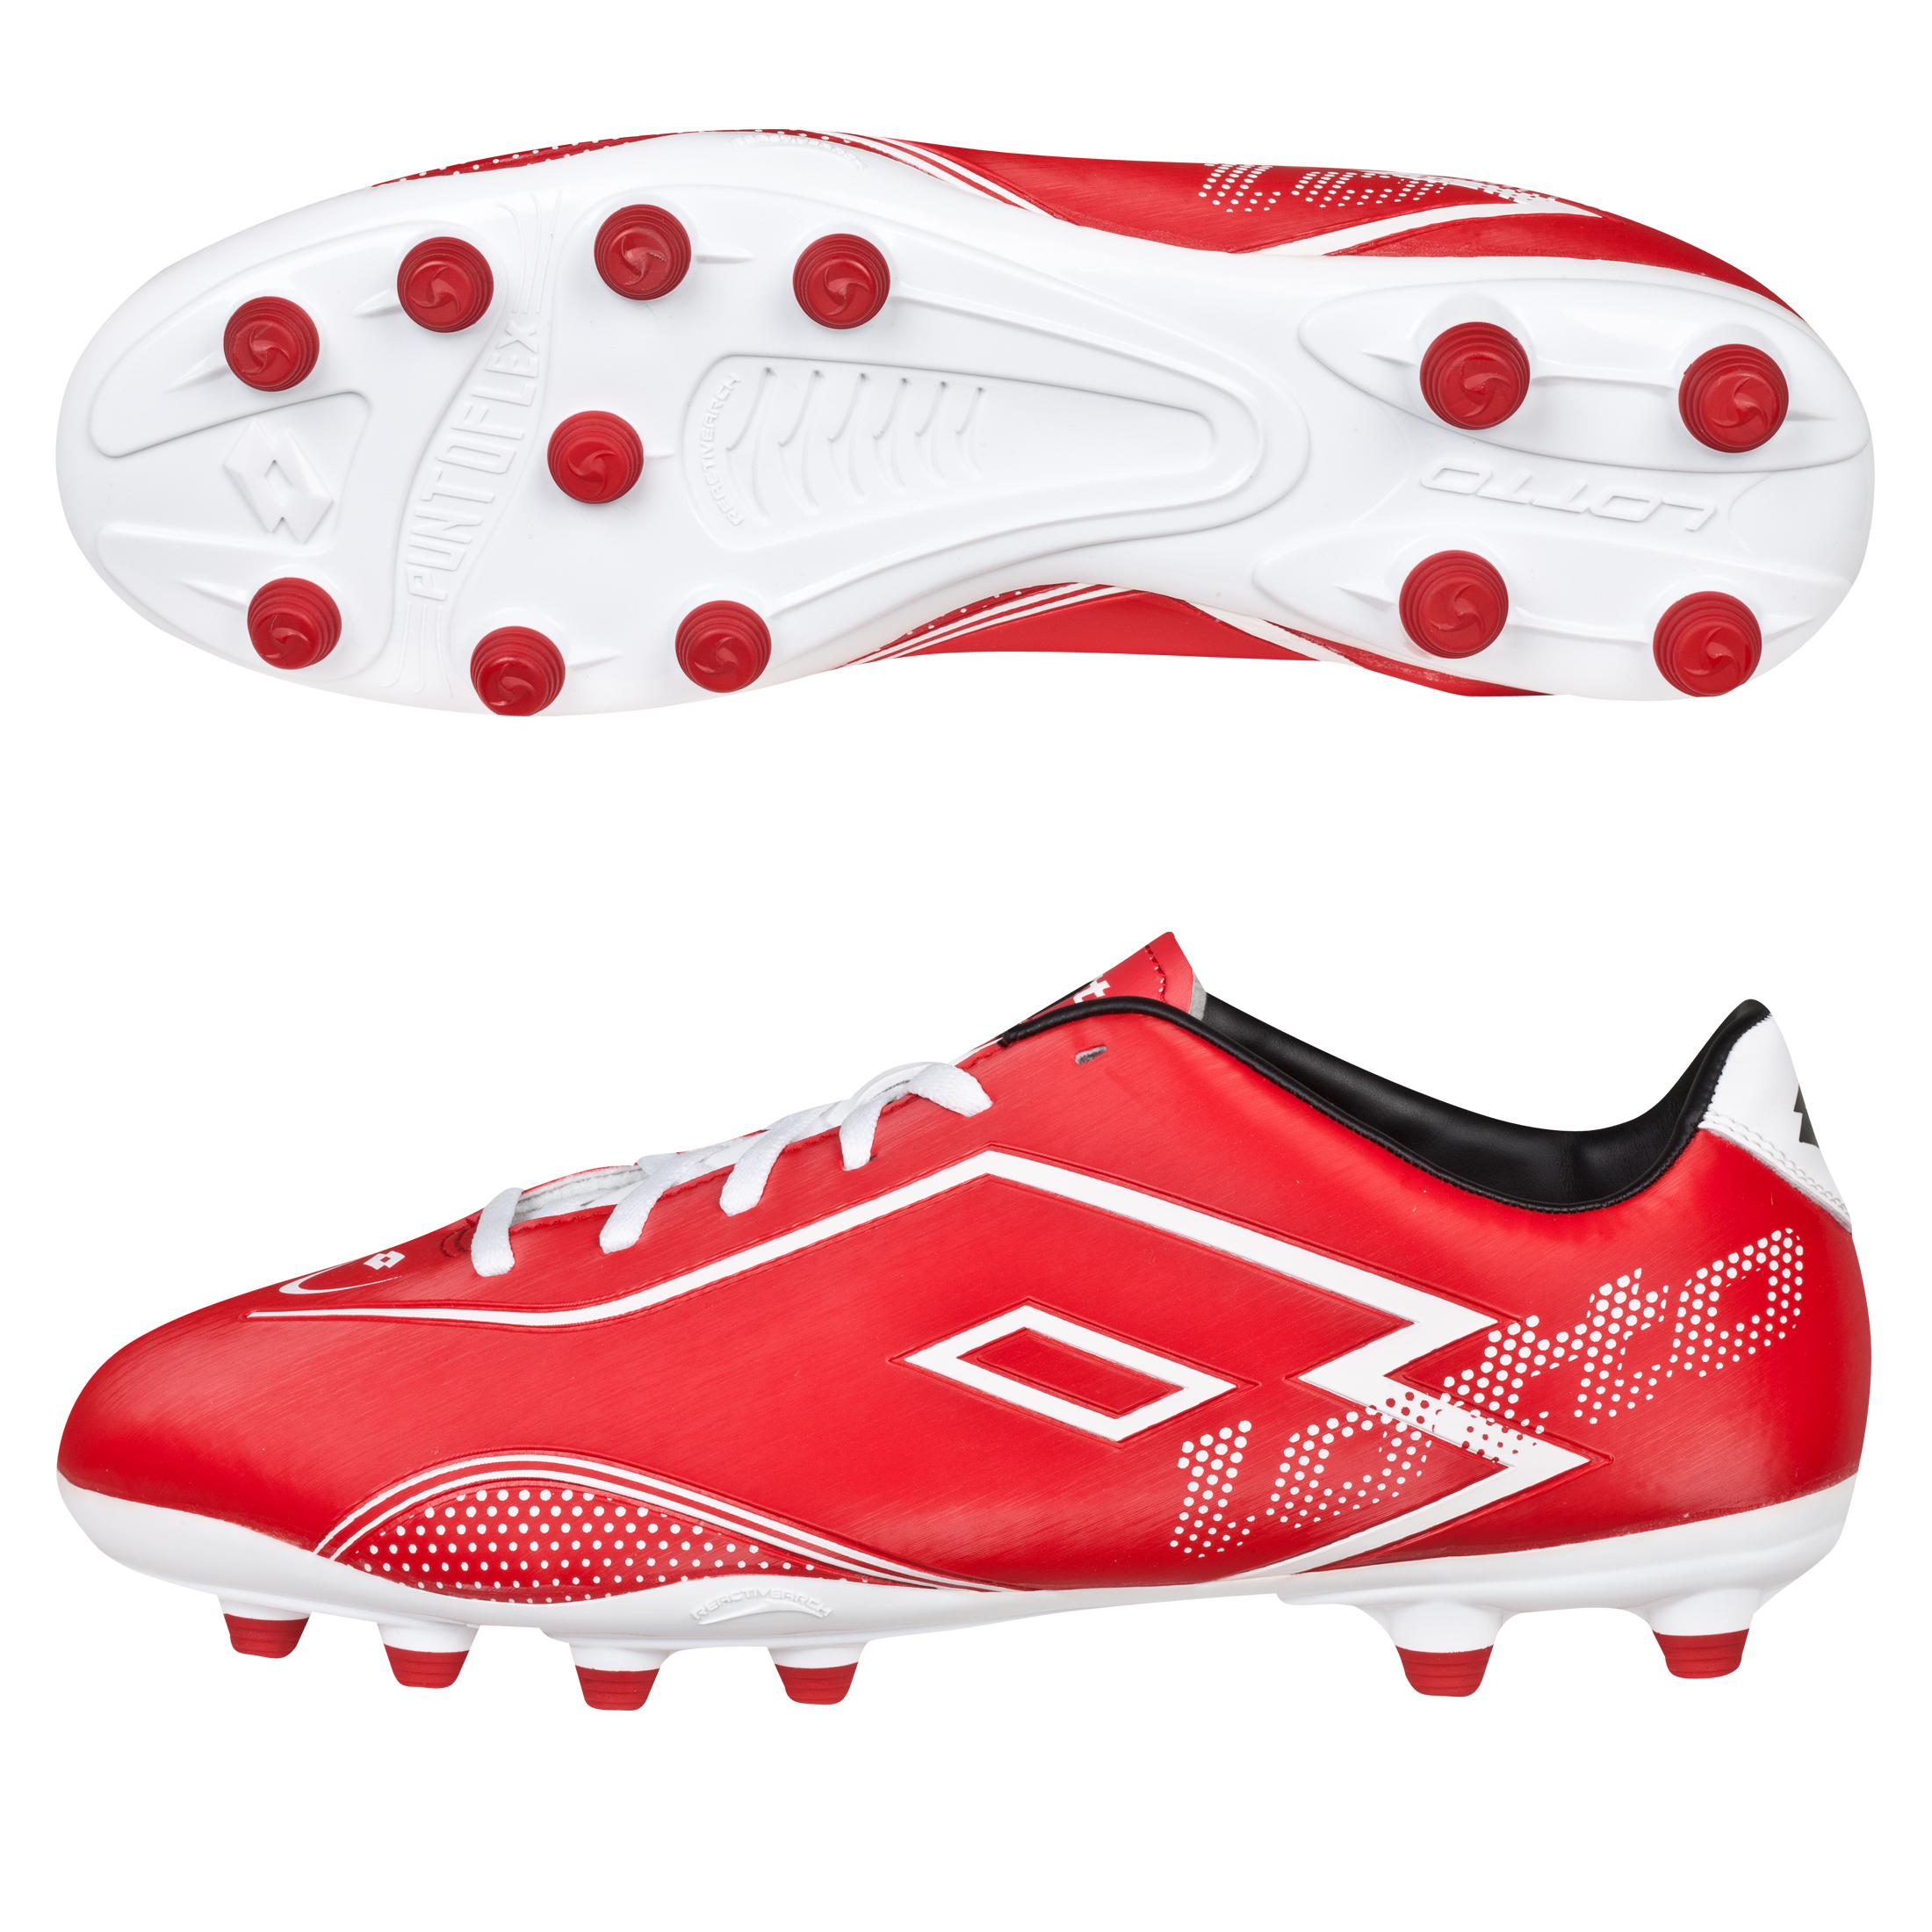 Lotto Zhero Gravity.II 700 FG Risk Red/White